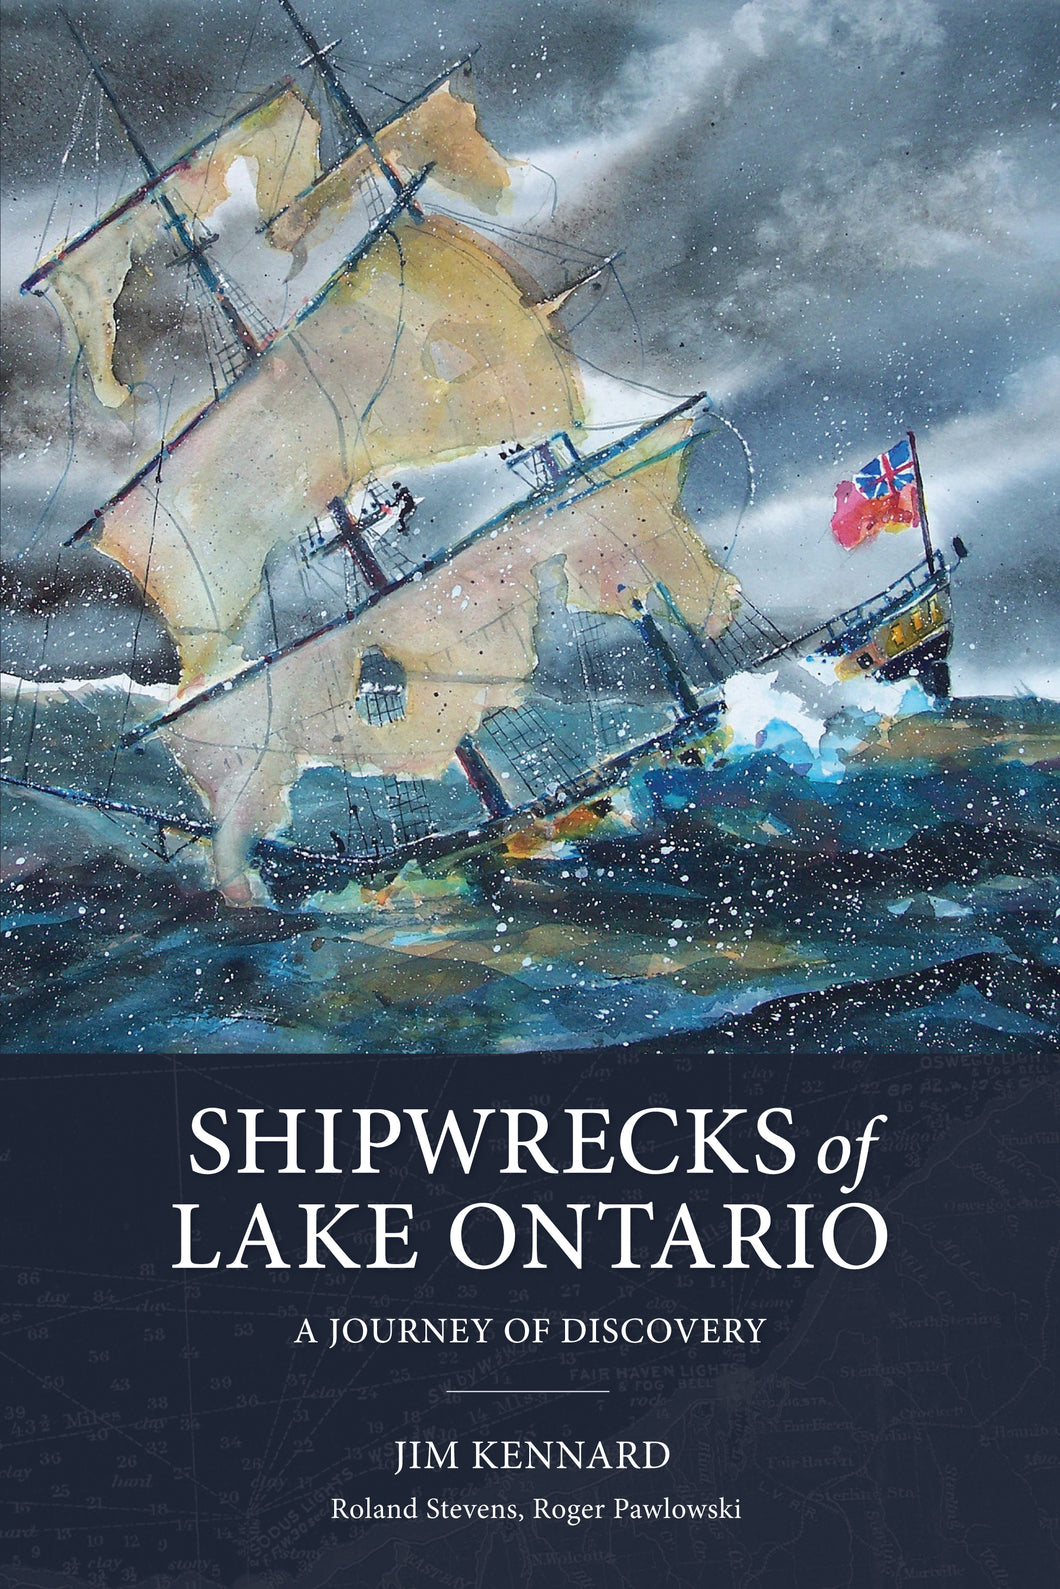 PRE-ORDER Shipwrecks of Lake Ontario: A Journey of Discovery